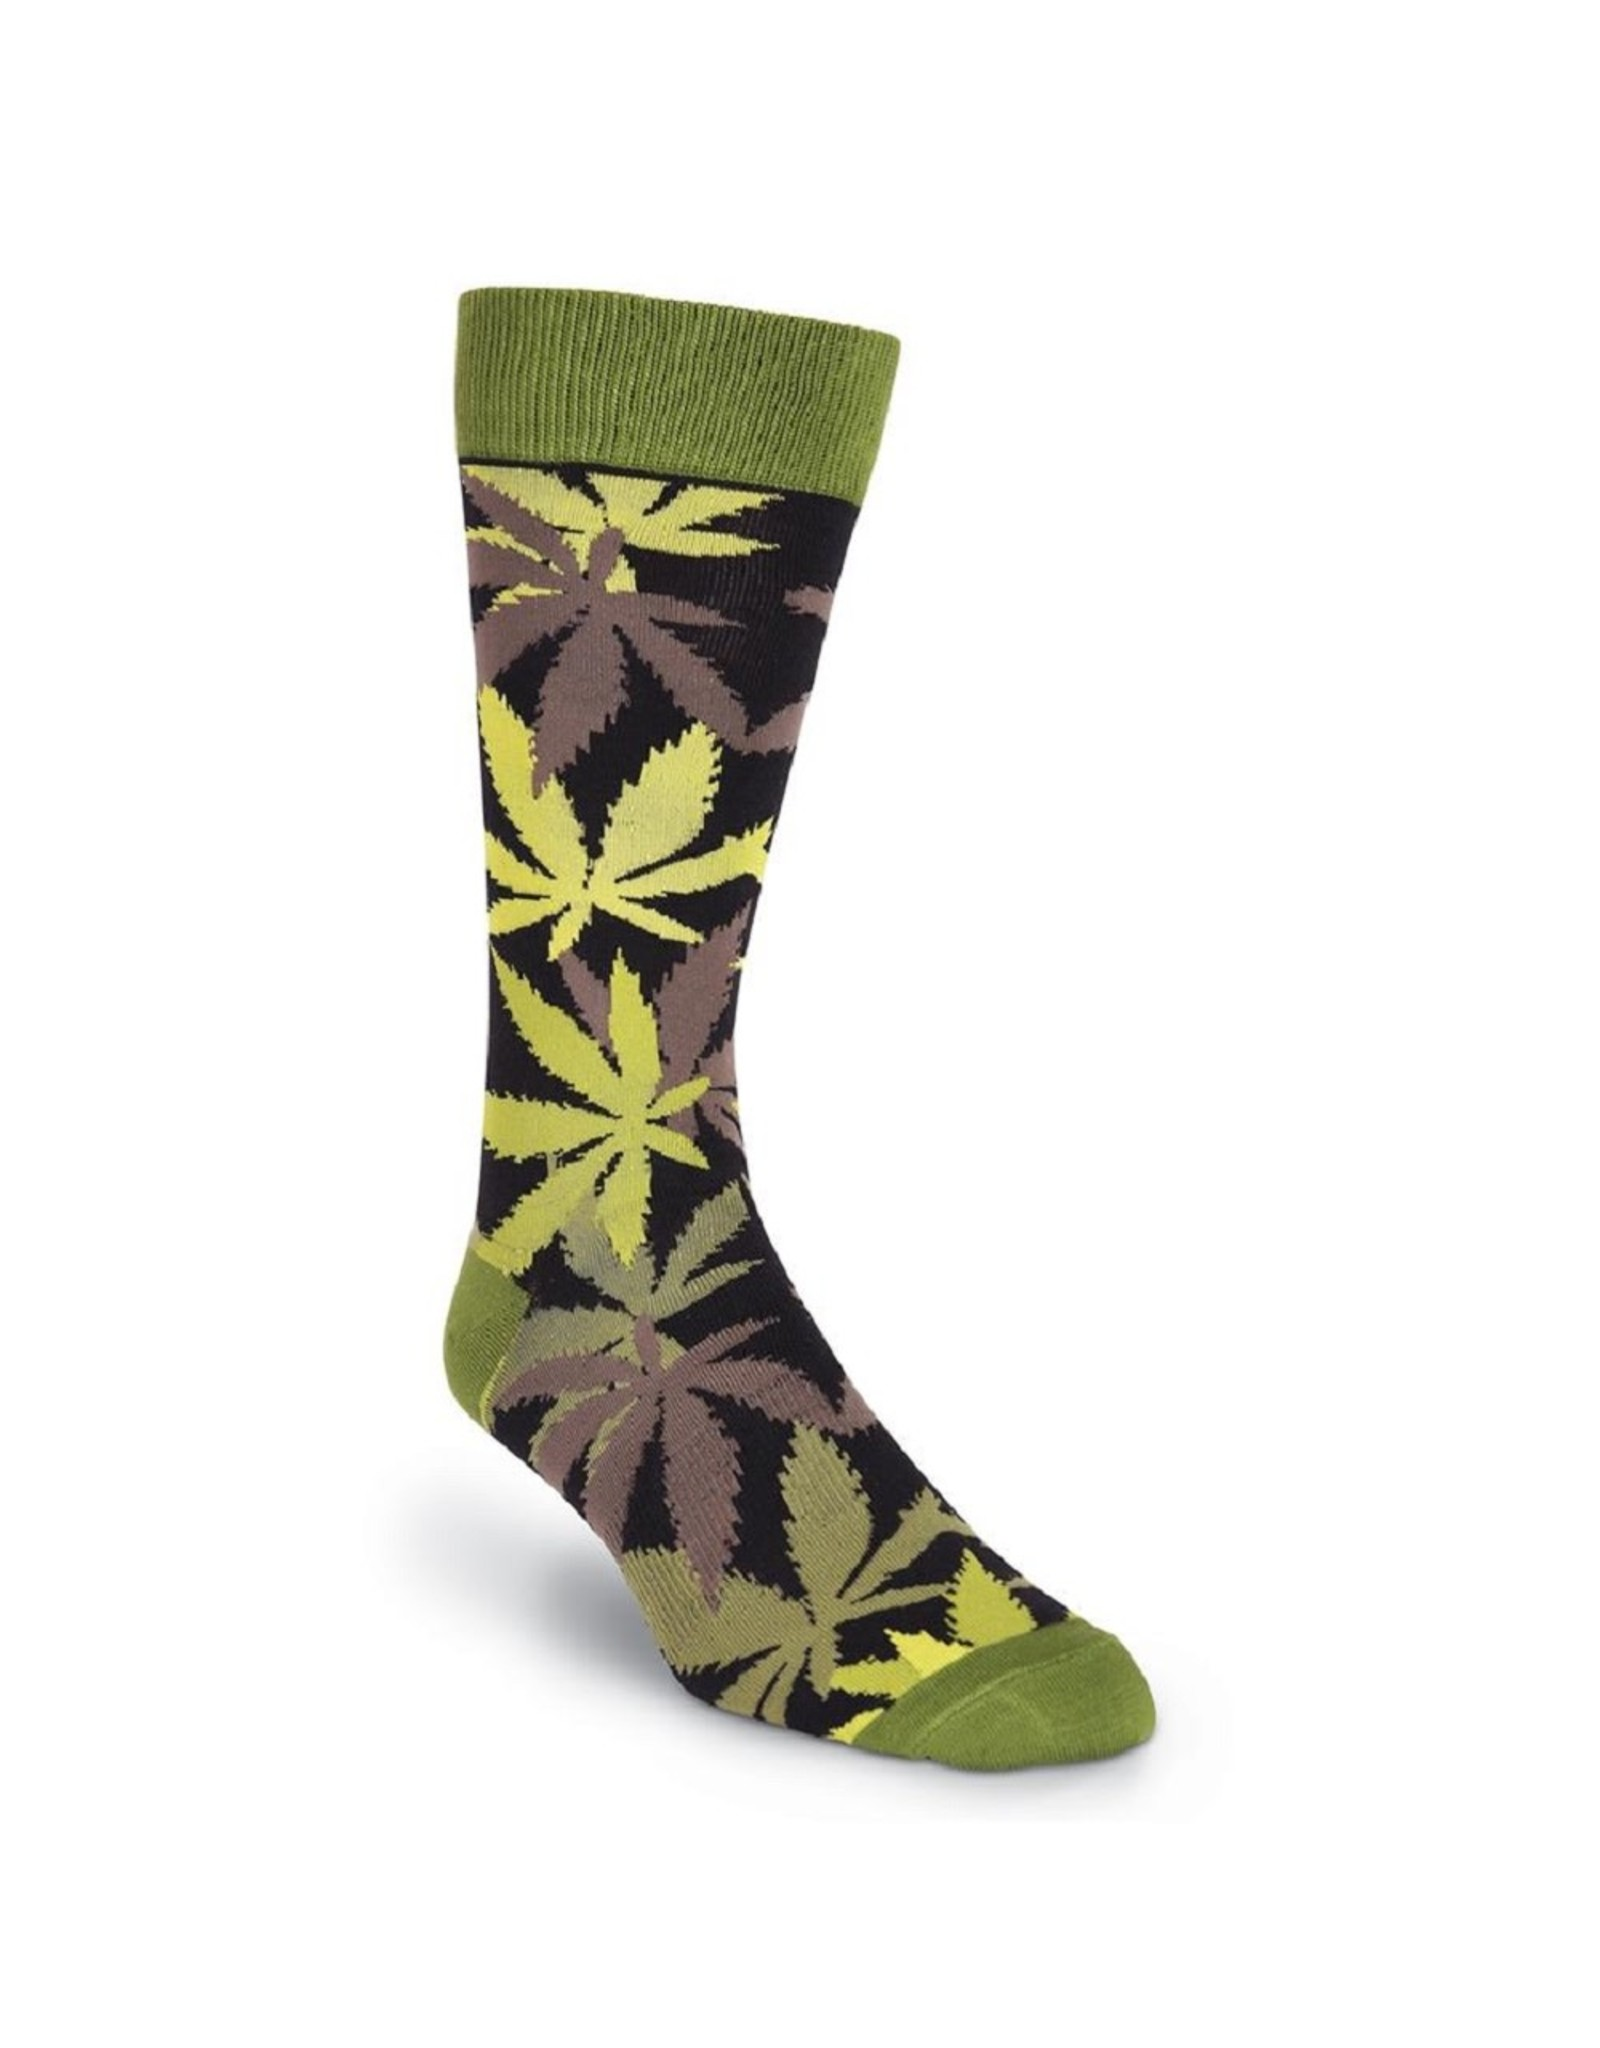 Socks (Mens) - Pot Luck - Pot Leaf